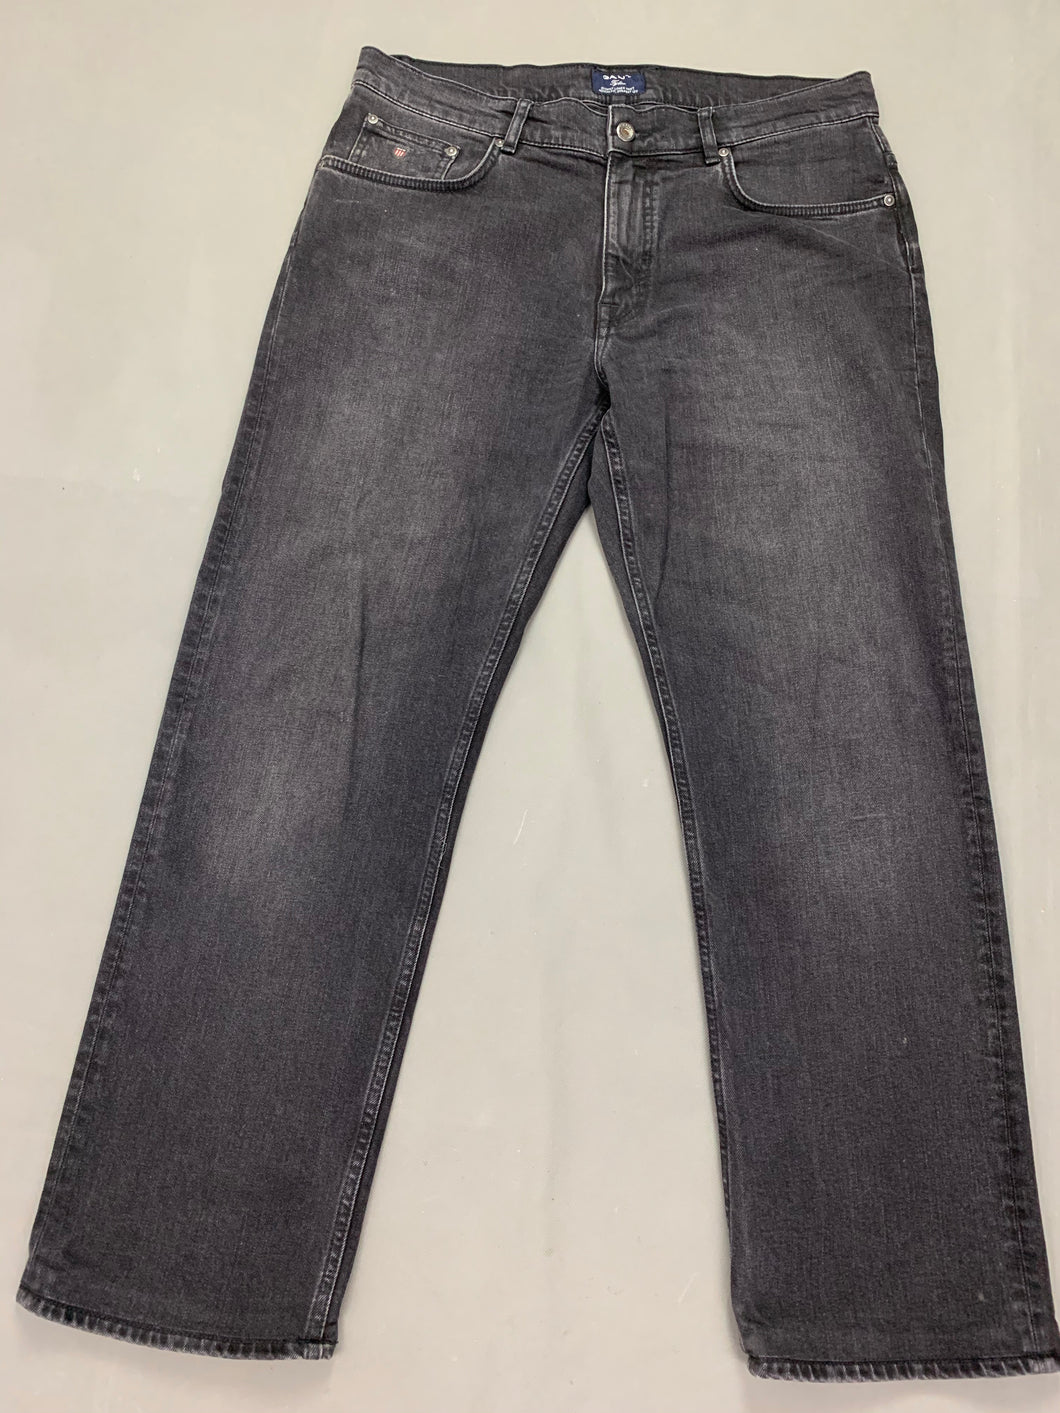 GANT Mens TYLER Grey Denim Straight Leg JEANS Size Waist 36